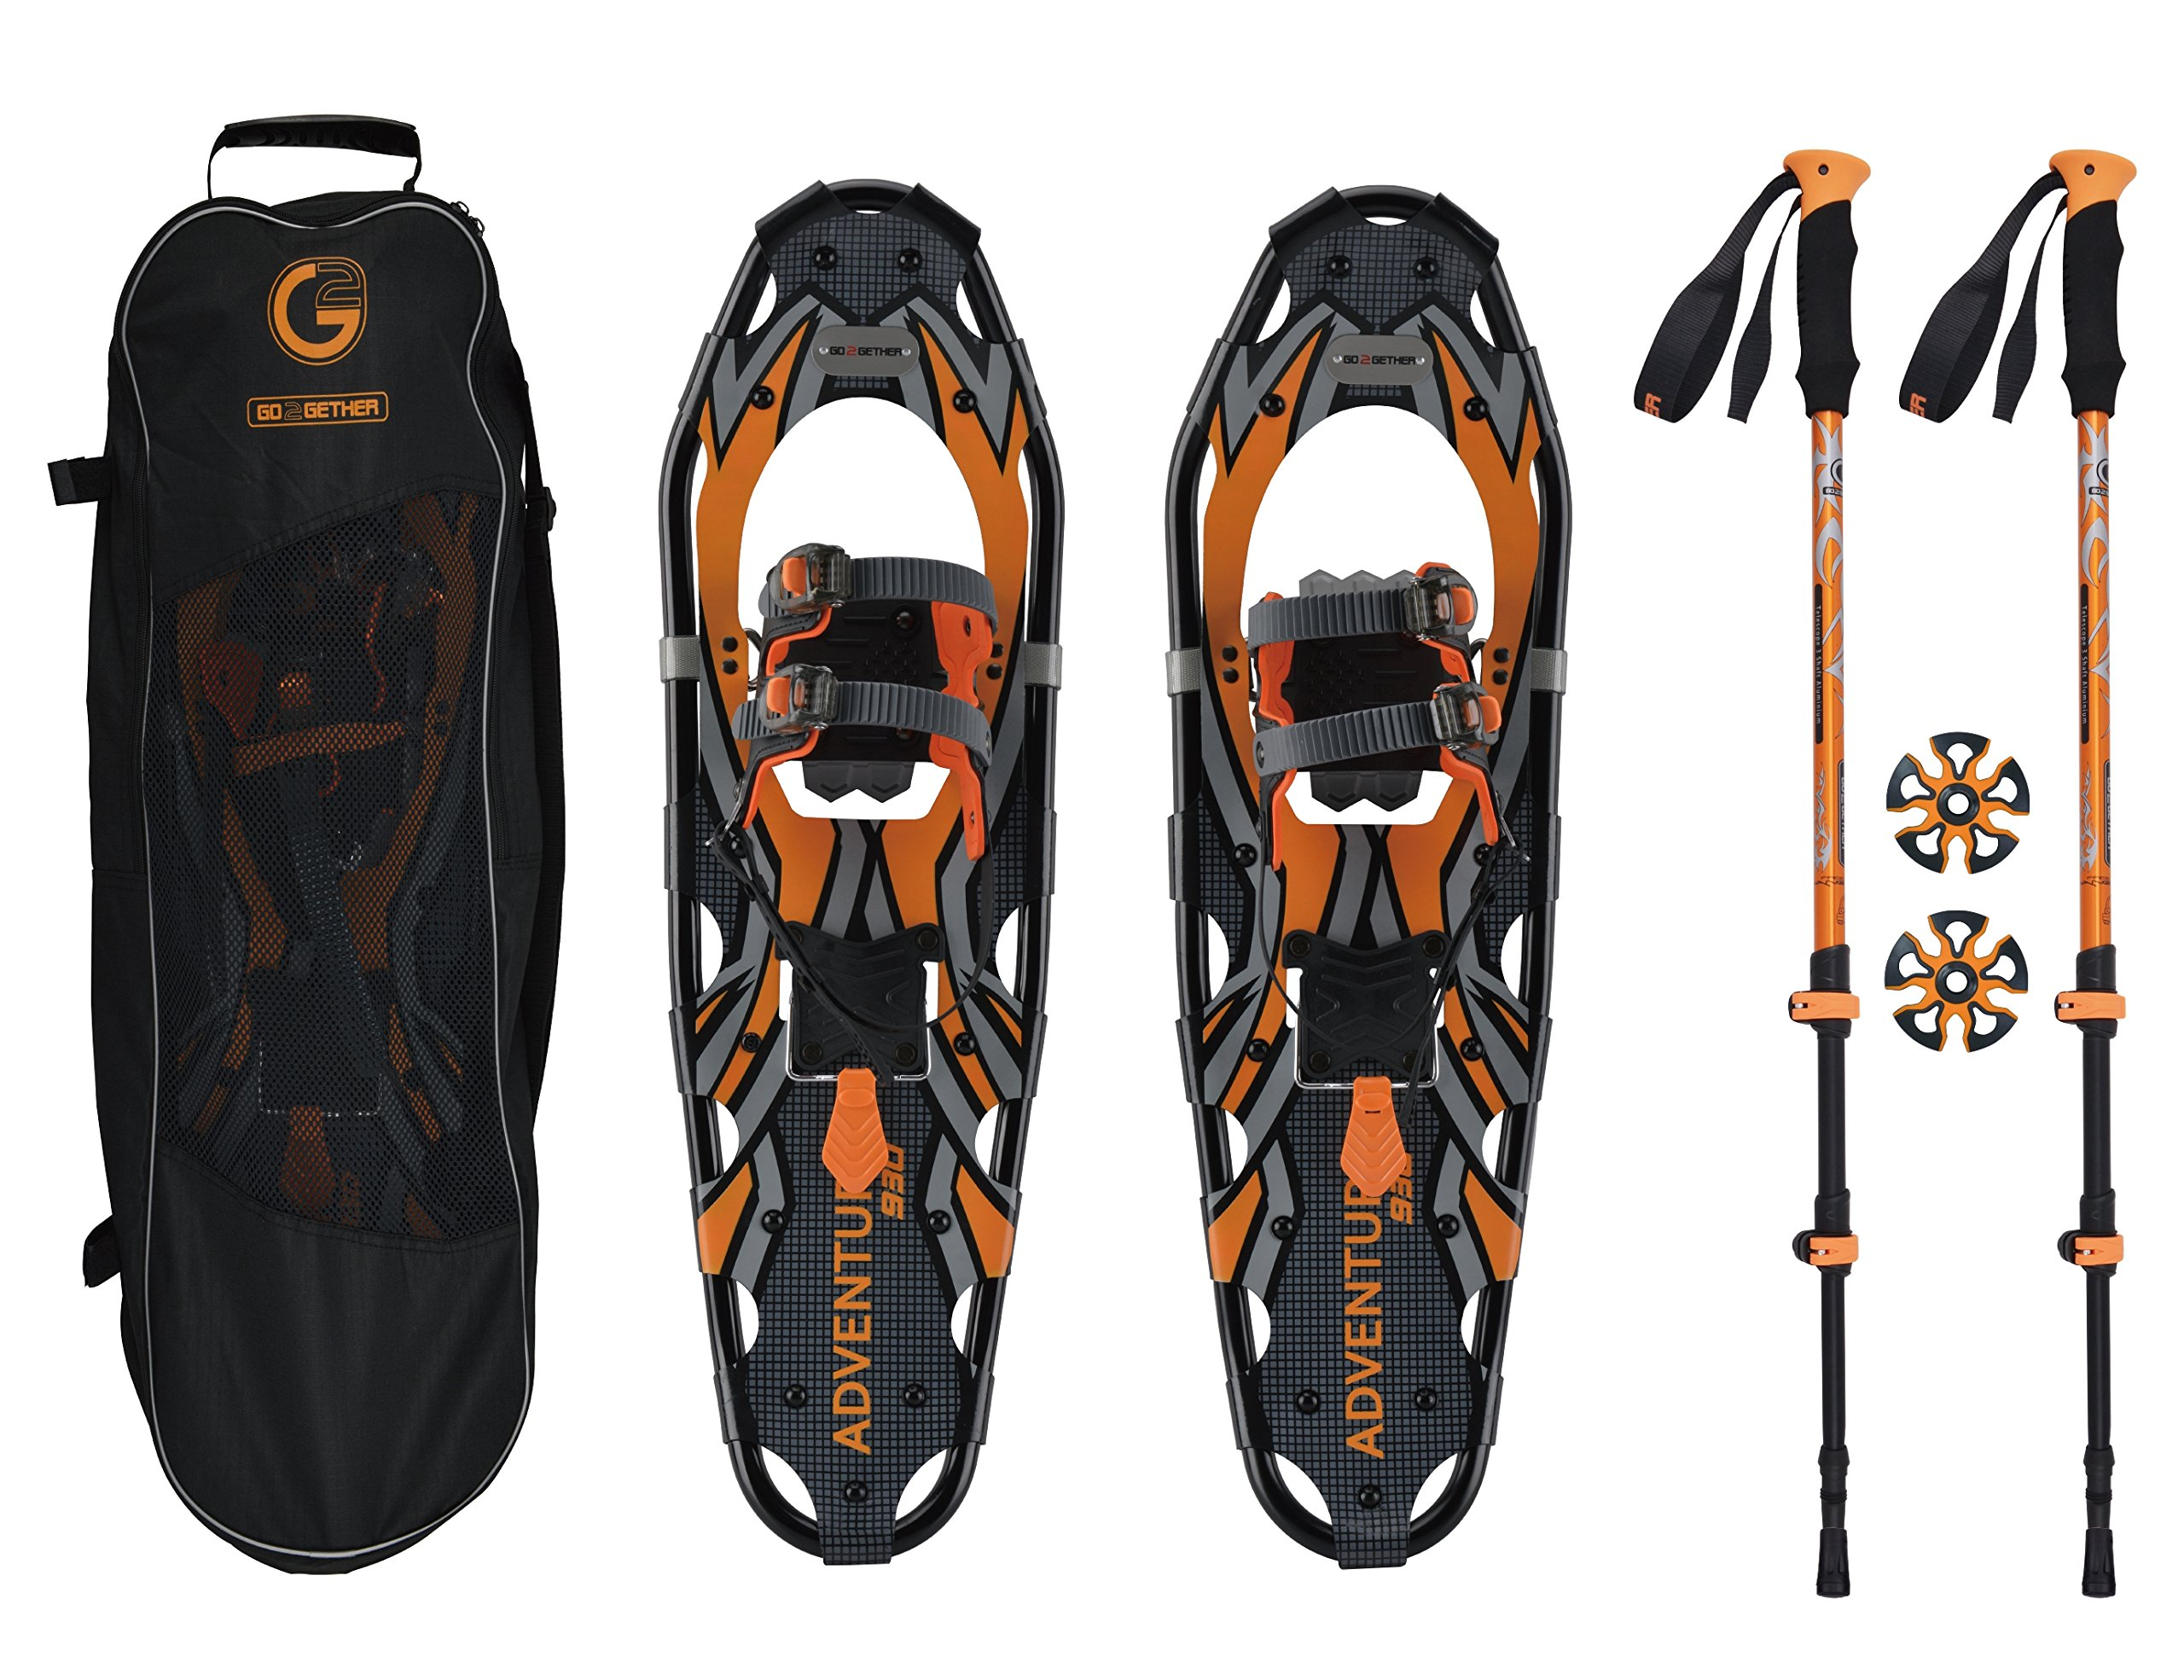 Go2gether Snowshoes Kit for Adult (30 inches, Optimized Weight Range up to 250lb) by G2 GO2GETHER